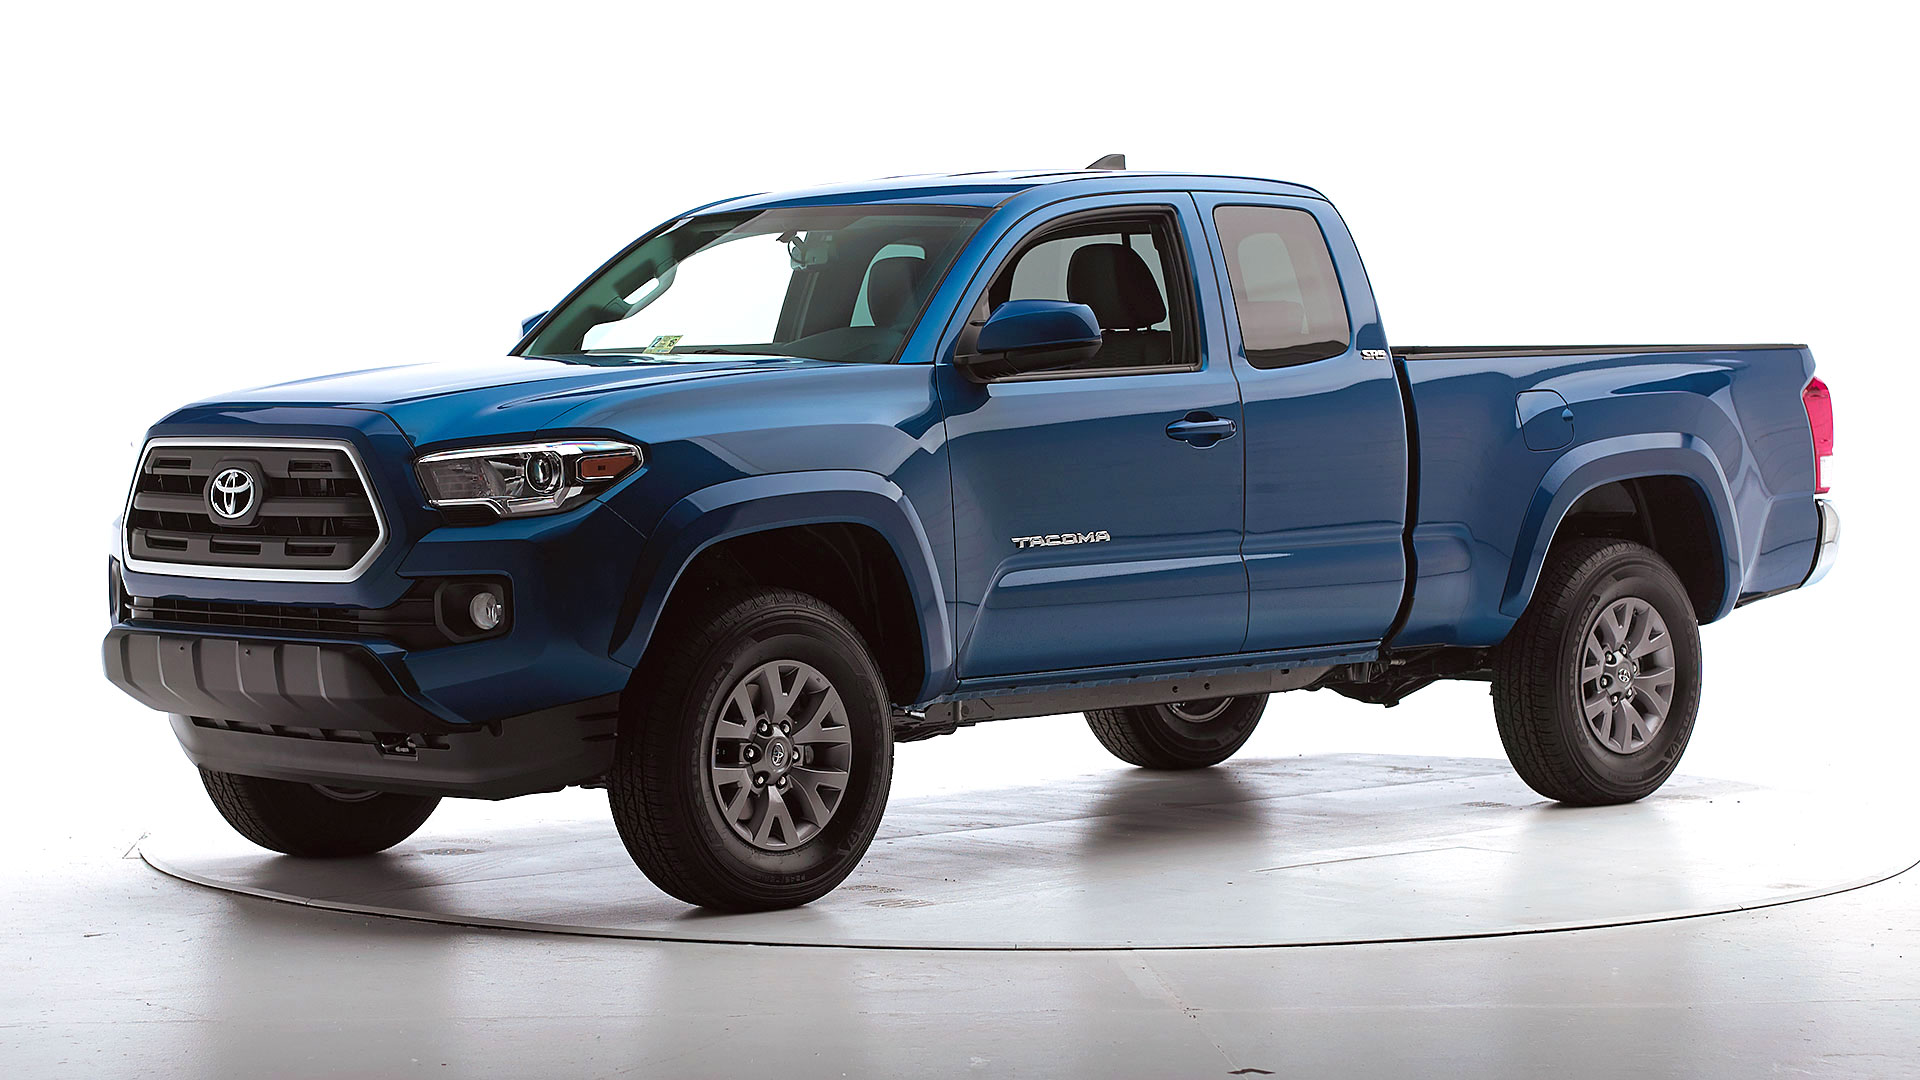 2021 Toyota Tacoma Extended cab pickup